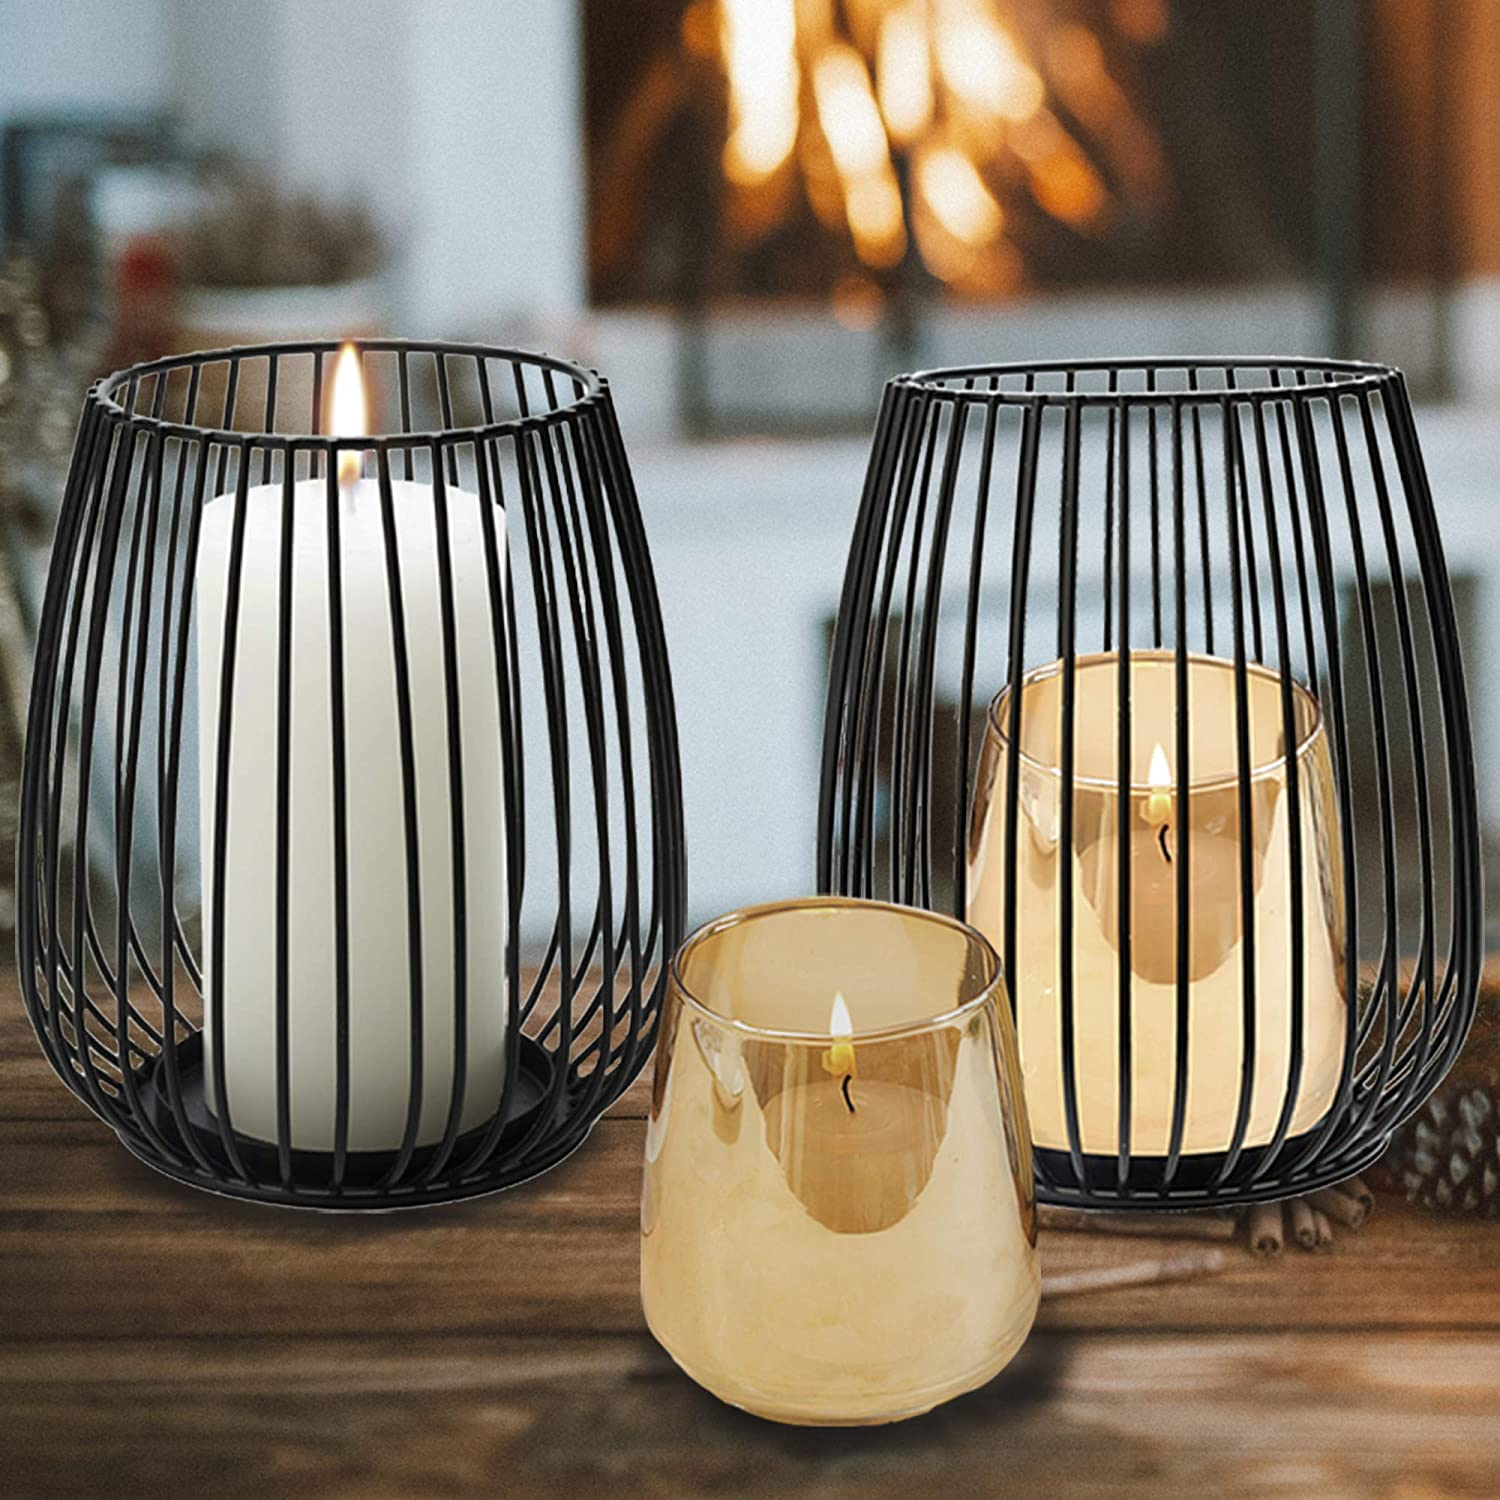 Amazon Com Black Metal Wire Pillar Candle Holders With Gold Glass Votive Candleholders Set Of 2 For Table Centerpiece And Room Decor Kitchen Dining